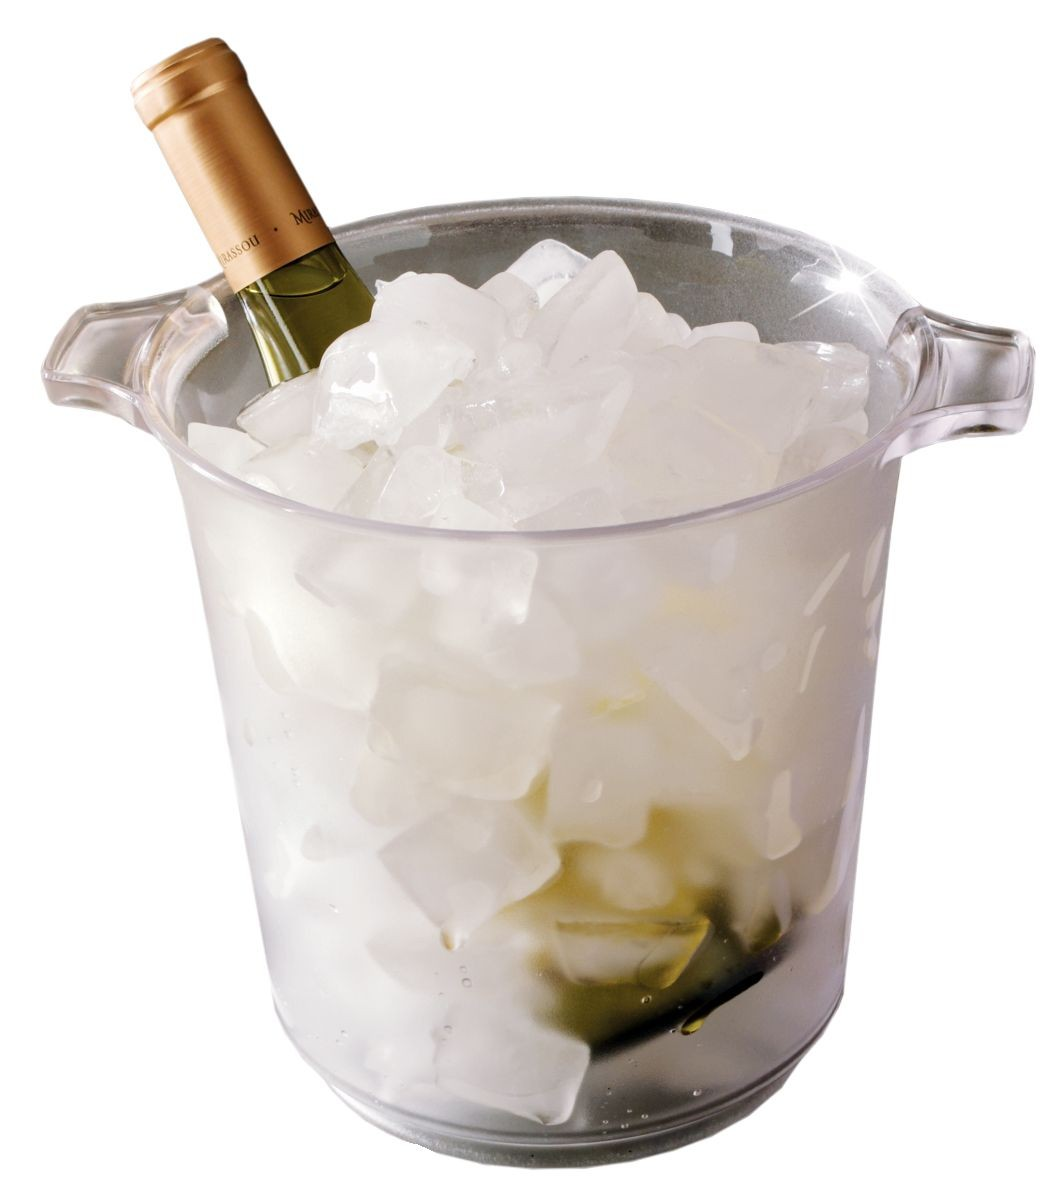 Emi Yoshi EMI-IB1 Clear Plastic Gallon Ice Bucket - 1/2 doz